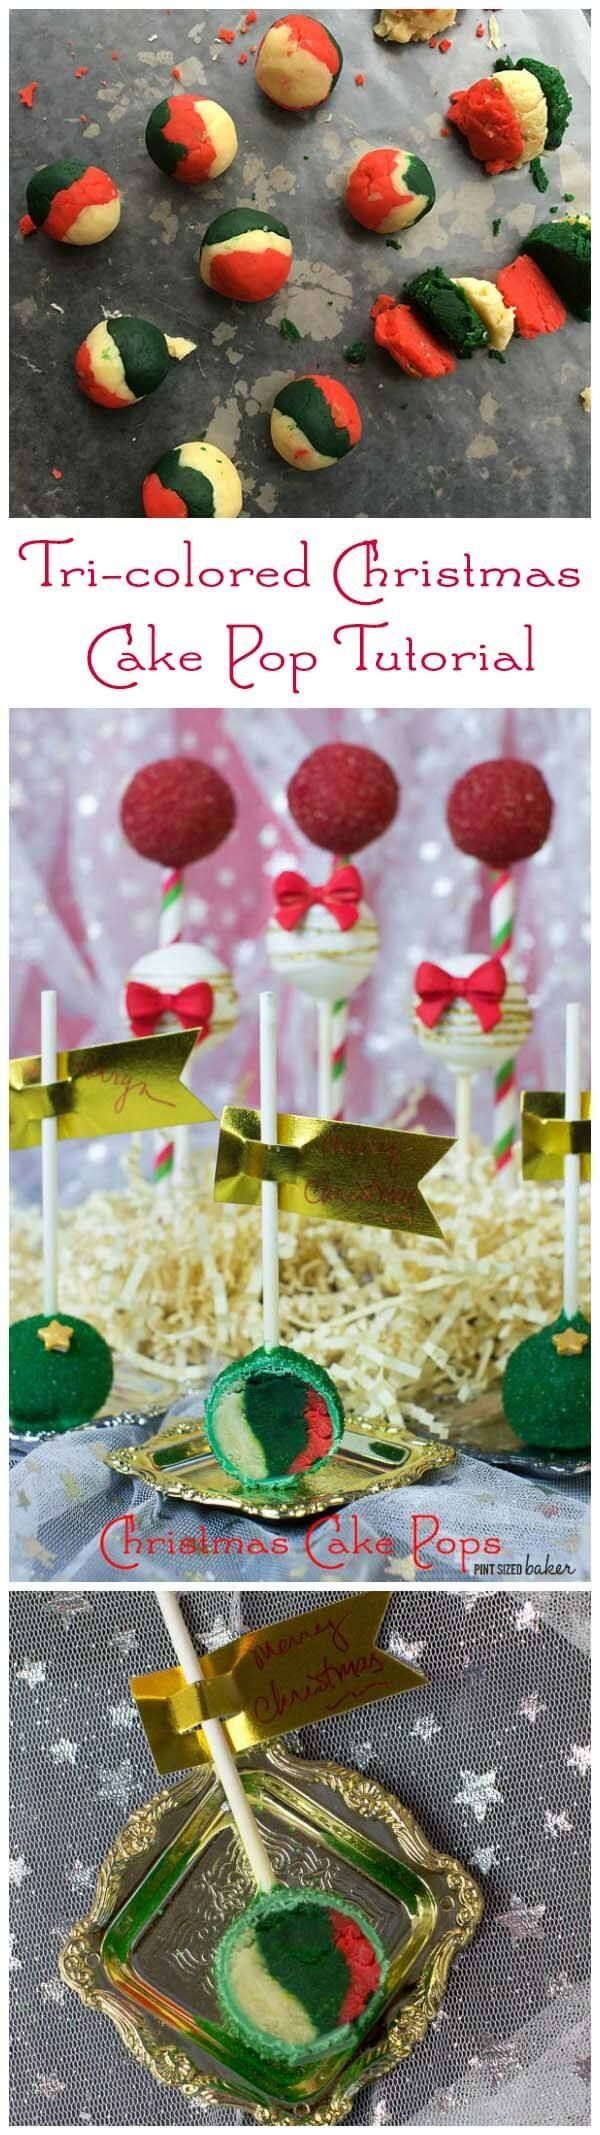 Amazing surprise inside, tri-colored Christmas Cake Pop tutorial. They are fun and make a big impression.